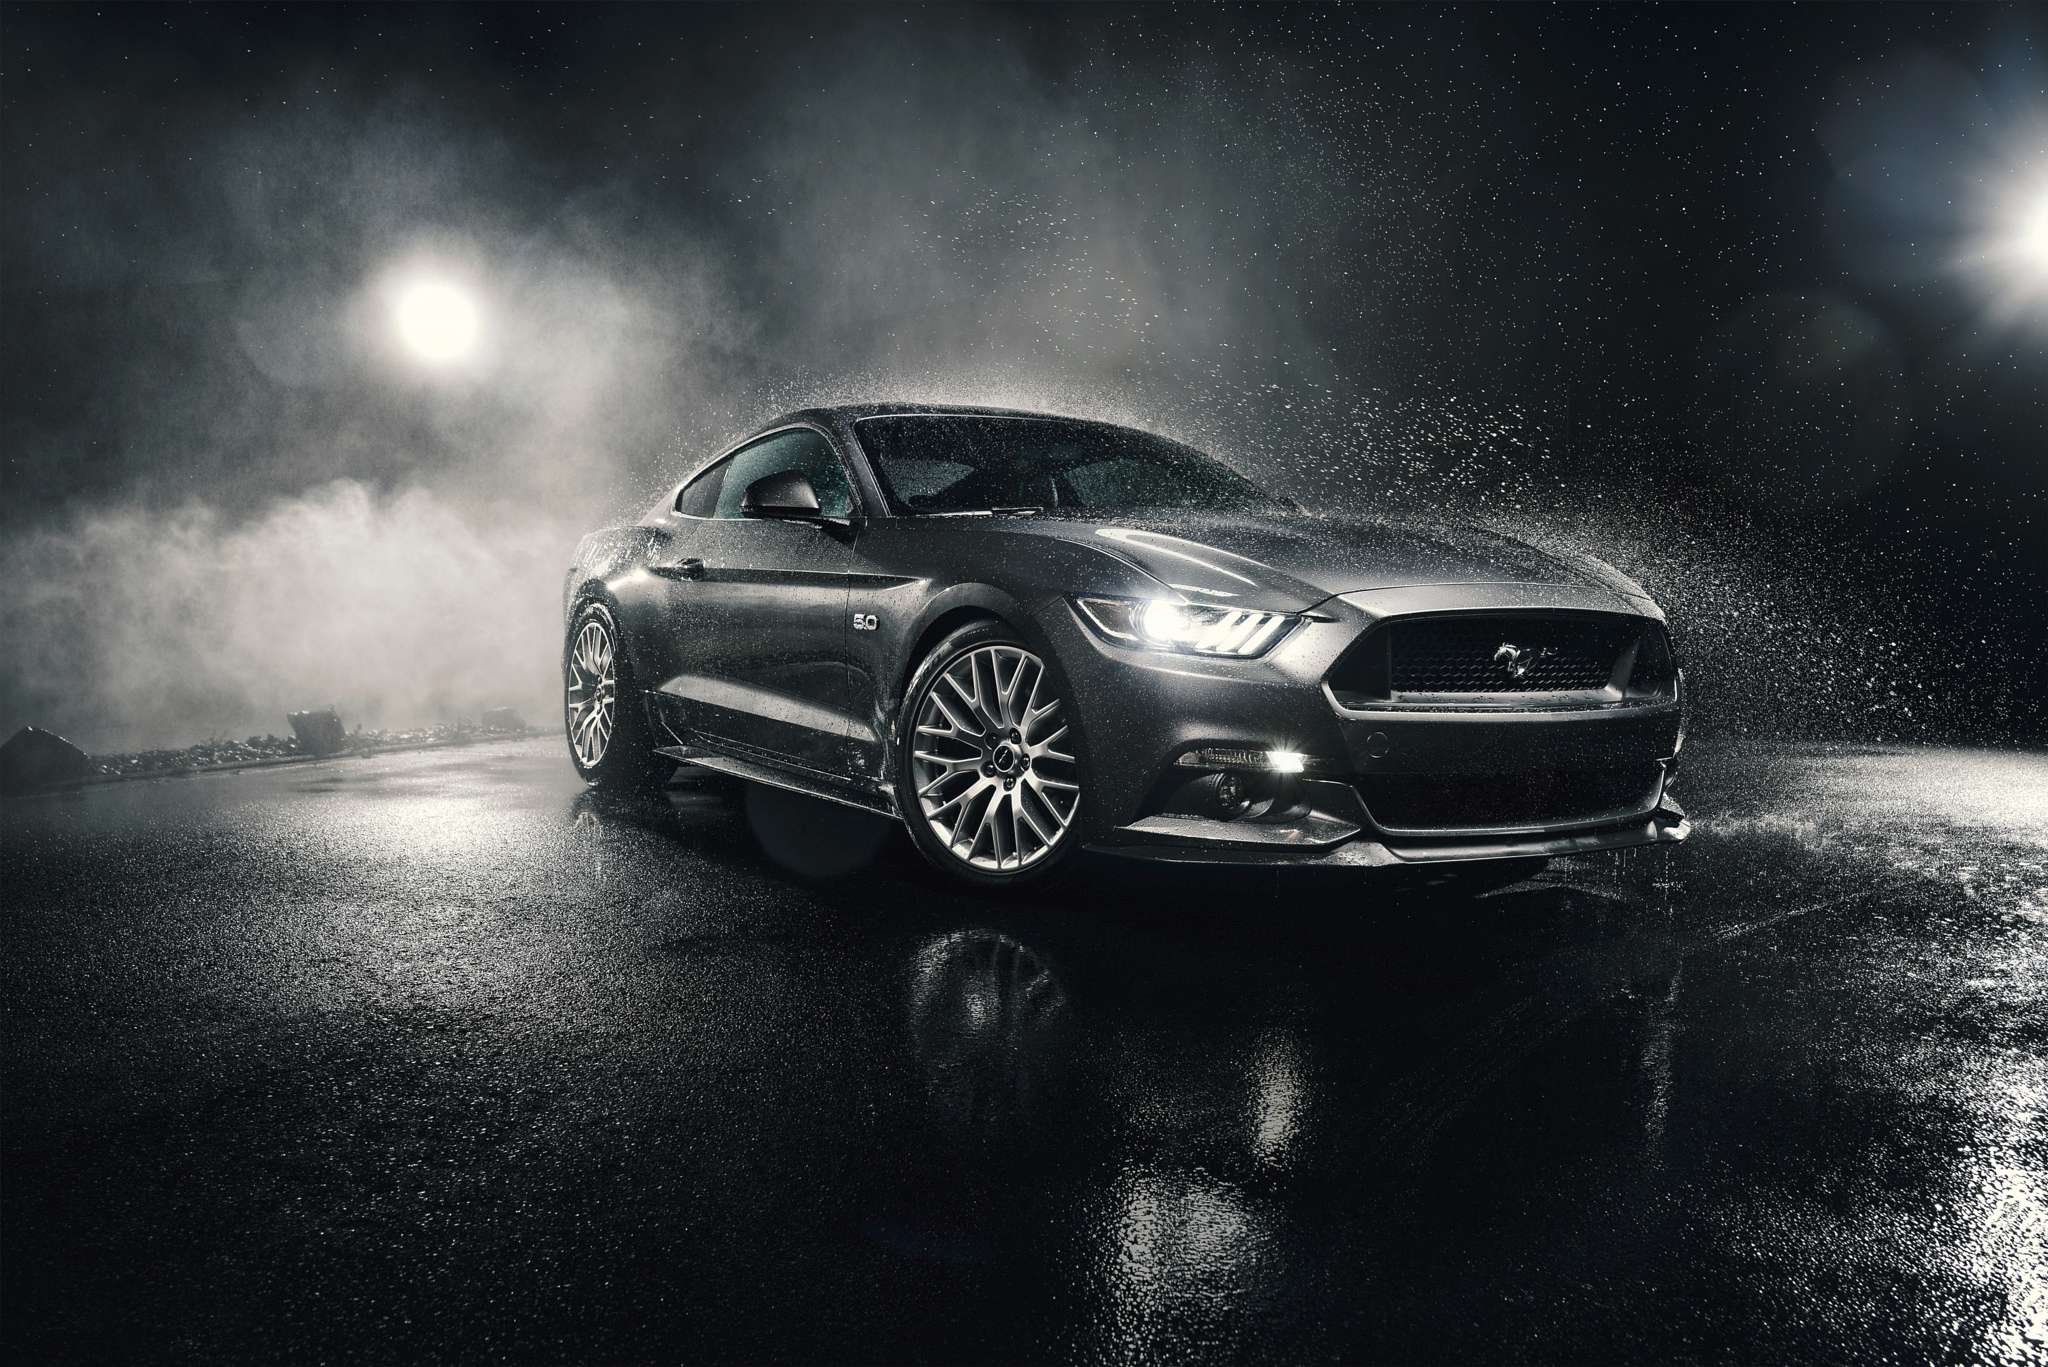 2048x1367 - Ford Mustang GT Wallpapers 7